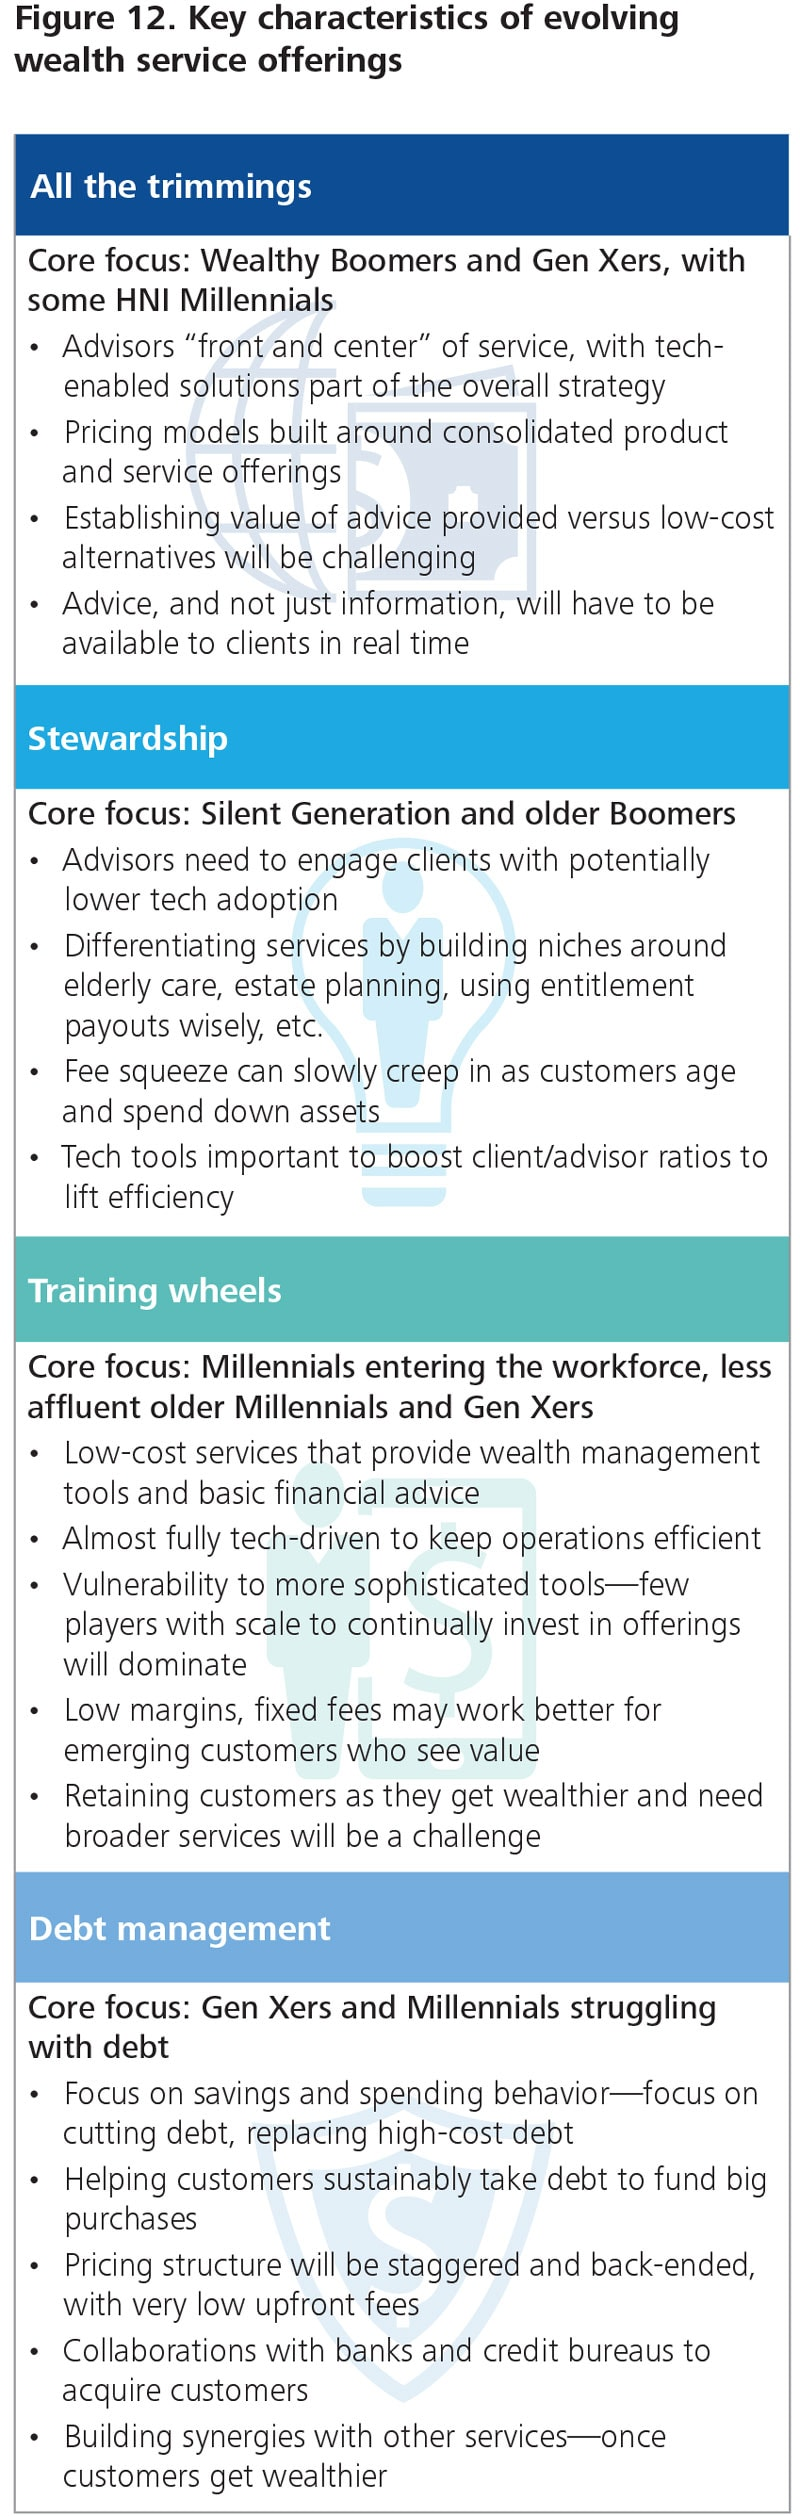 DUP_1371-Figure 12. Key characteristics of evolving wealth service offerings